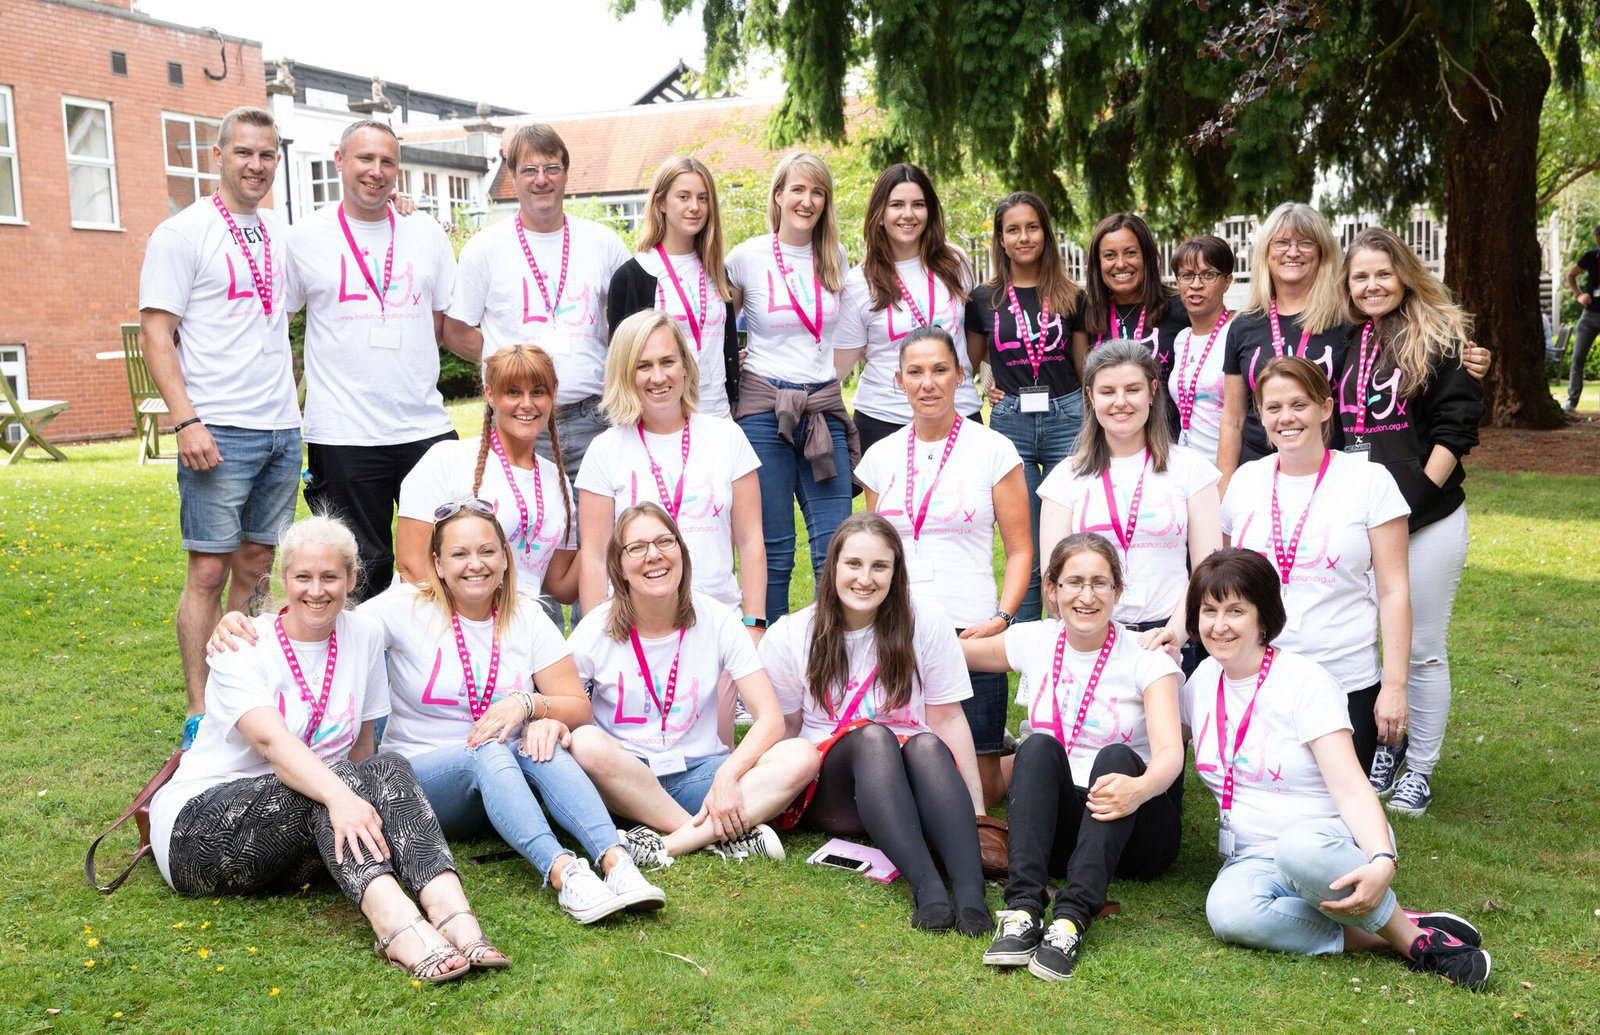 The Lily Foundation charity volunteers fighting mitochondrial disease